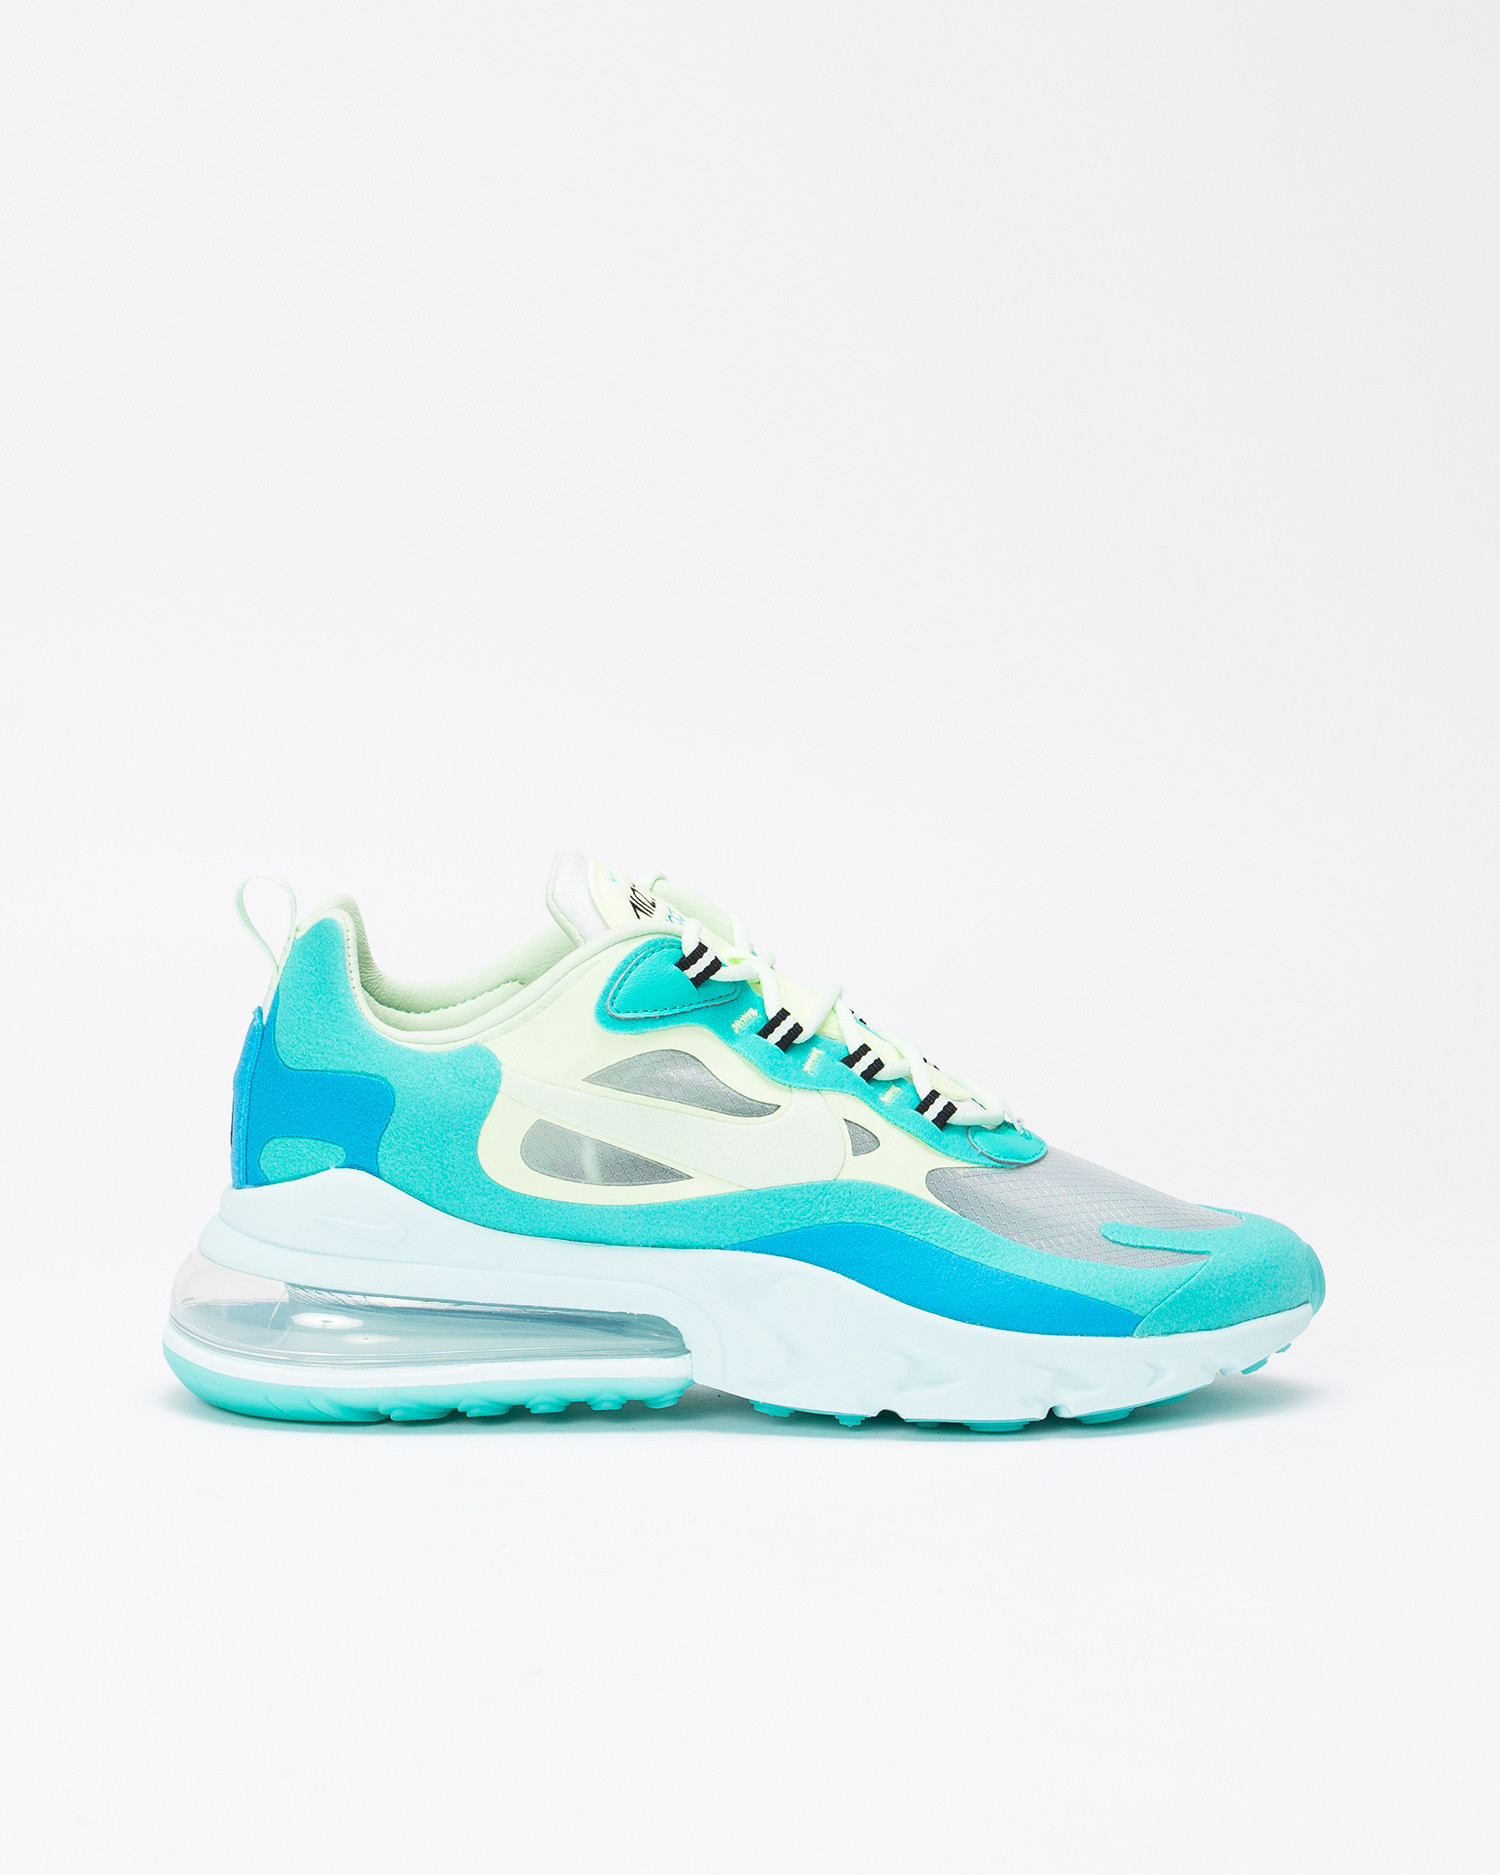 Nike Nike Air max 270 react Hyper jadefrosted spruce barely volt